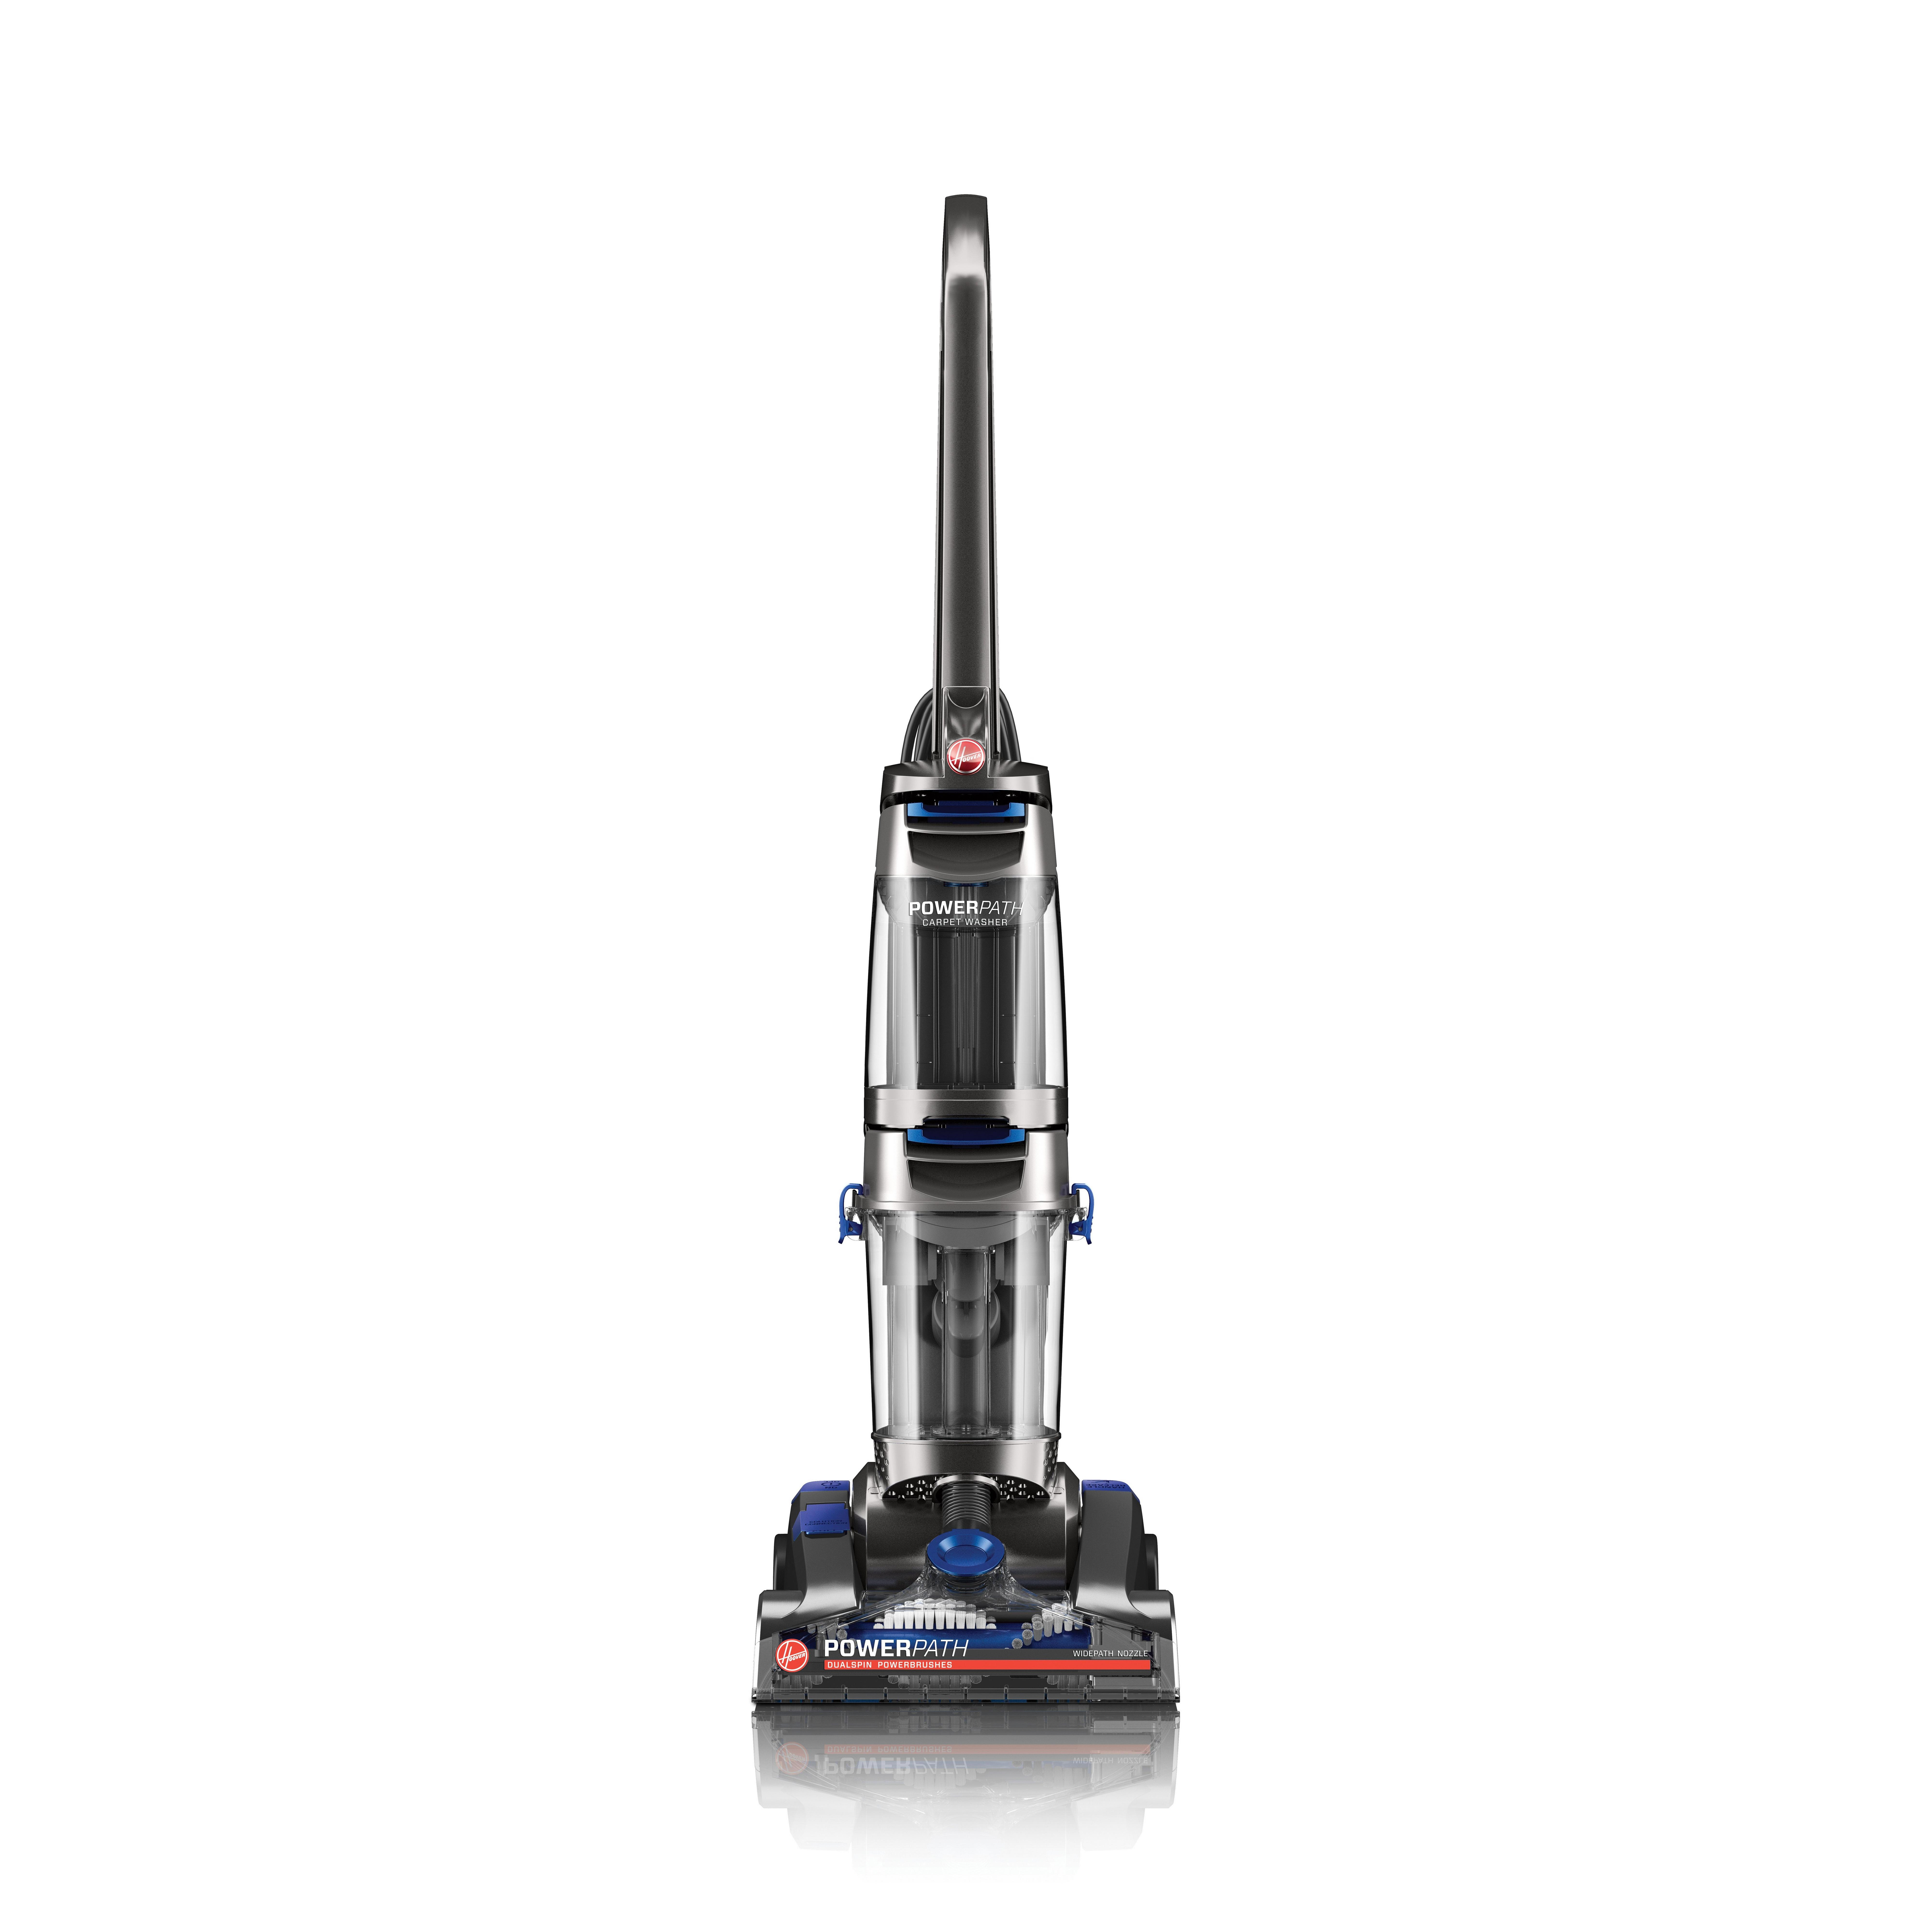 Reconditioned Power Path Carpet Cleaner